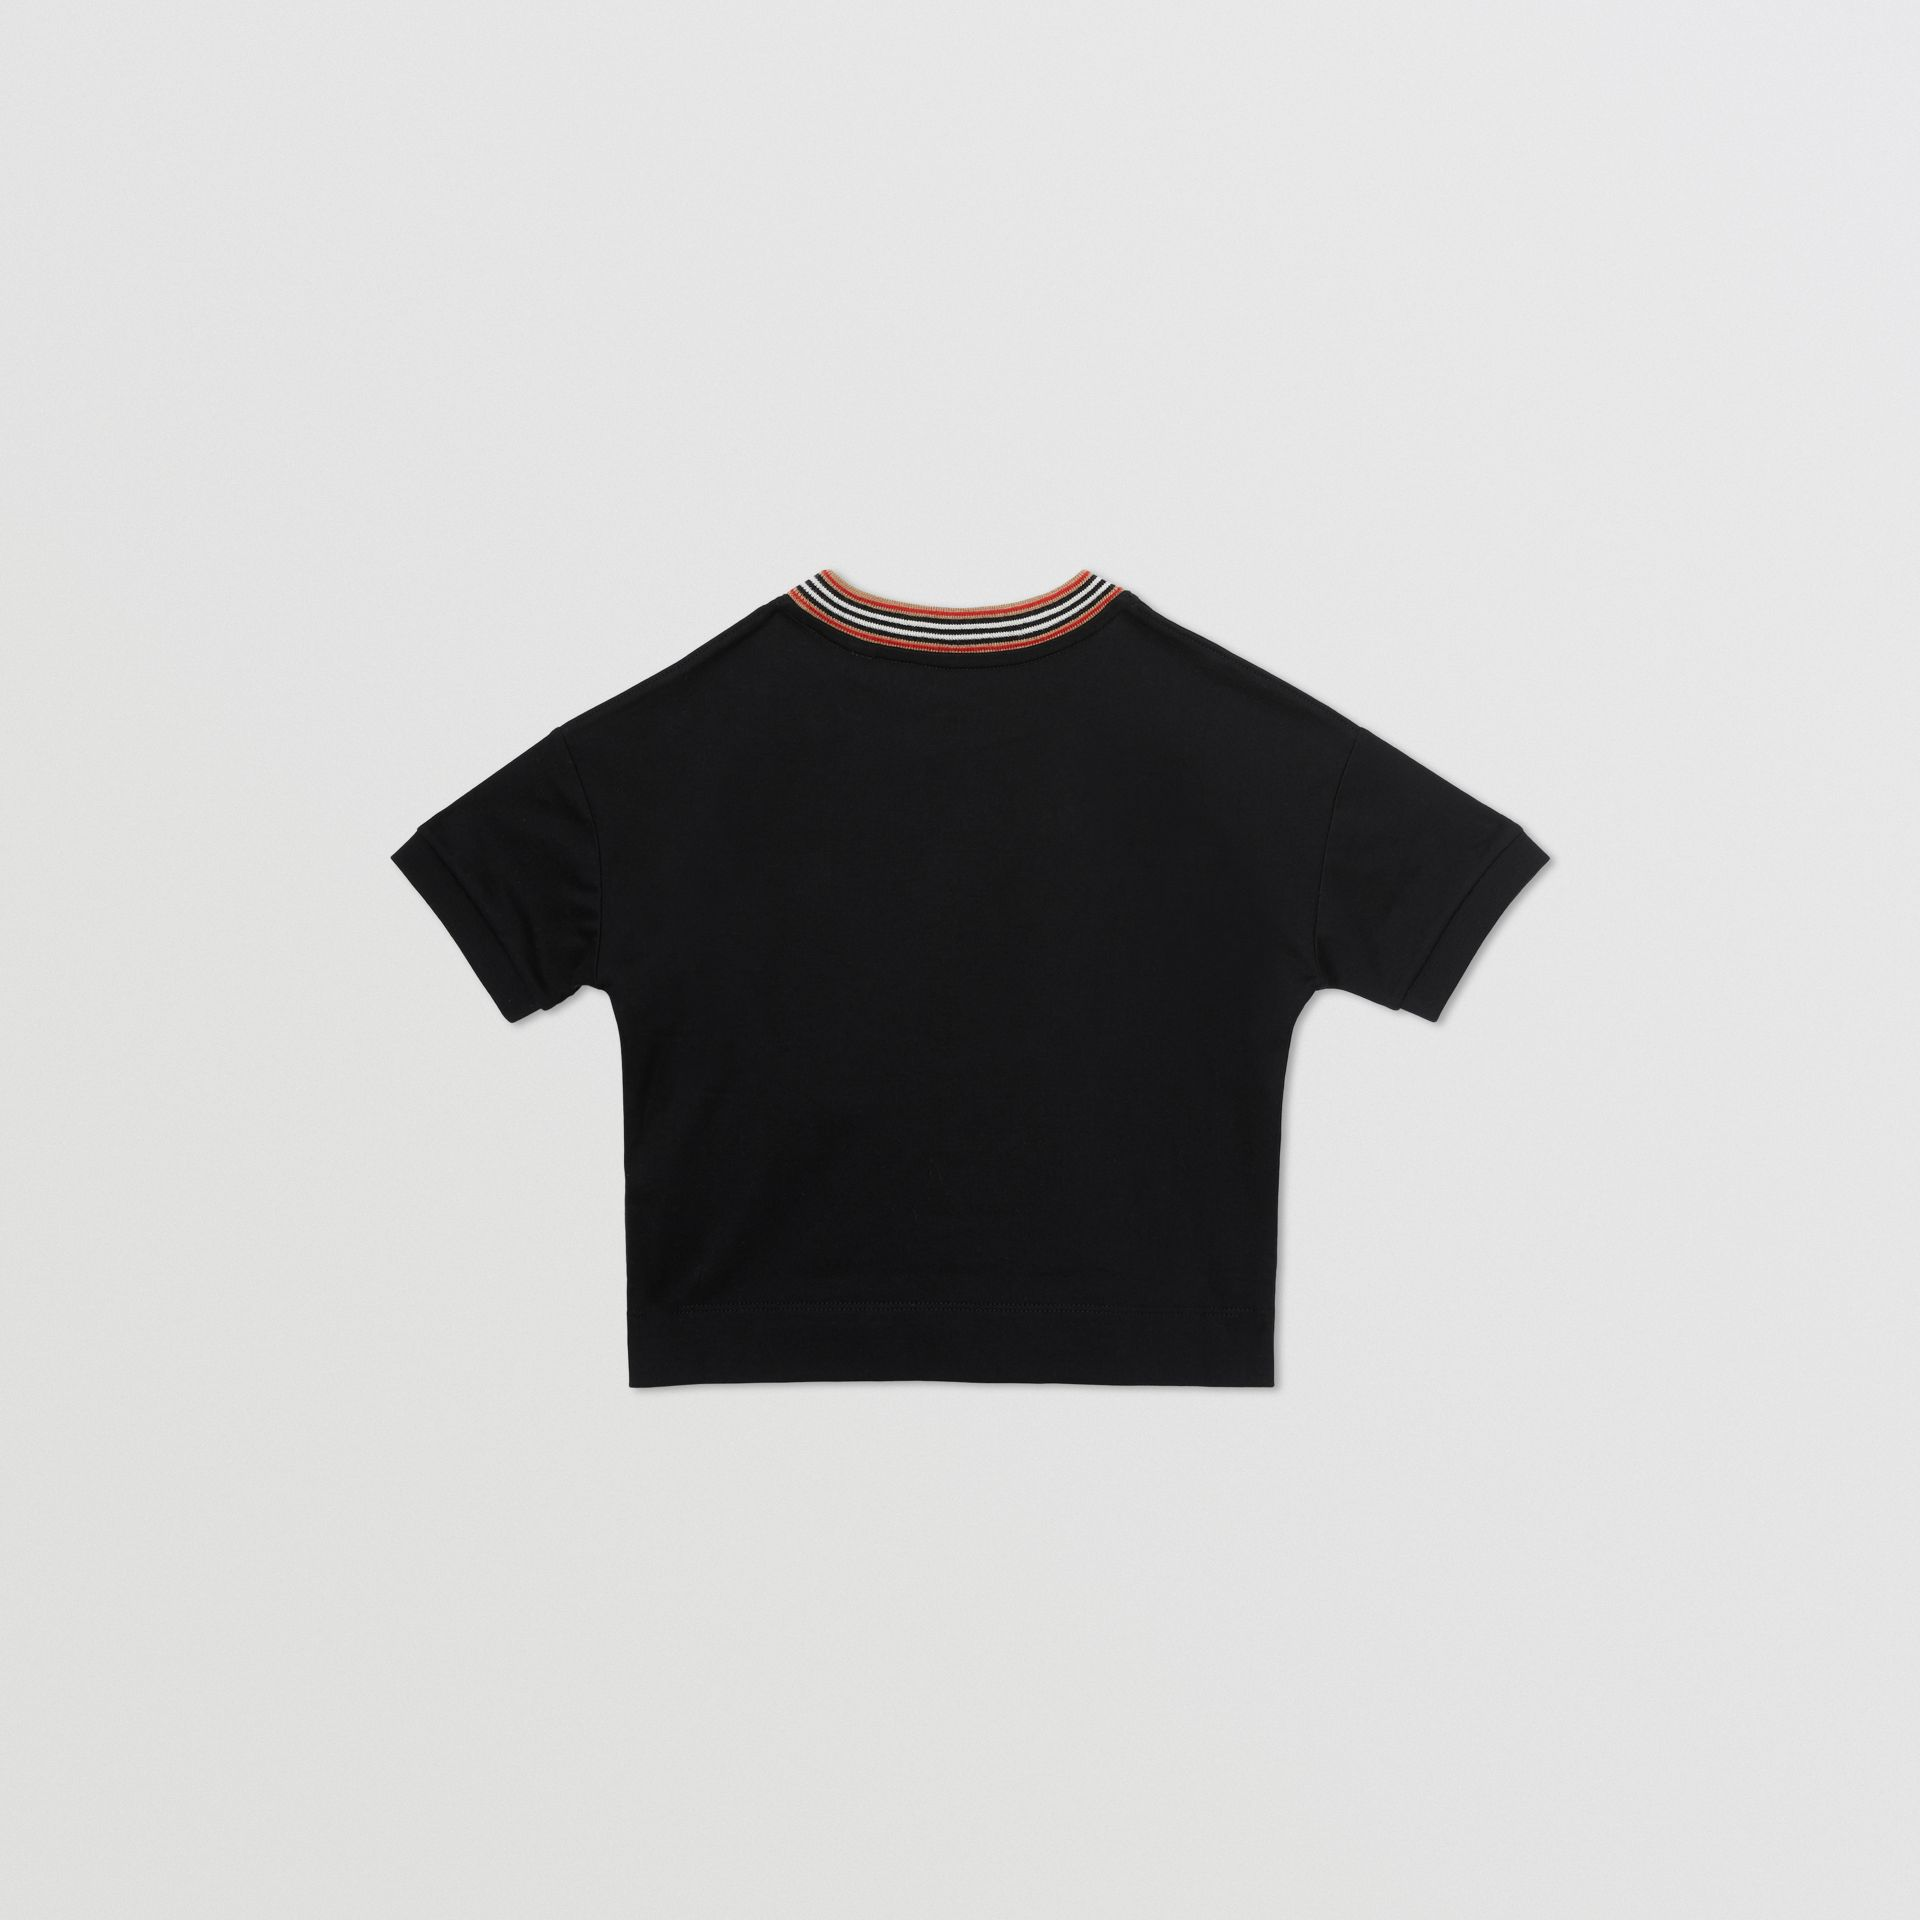 Cake Print Cotton T-shirt in Black | Burberry - gallery image 3